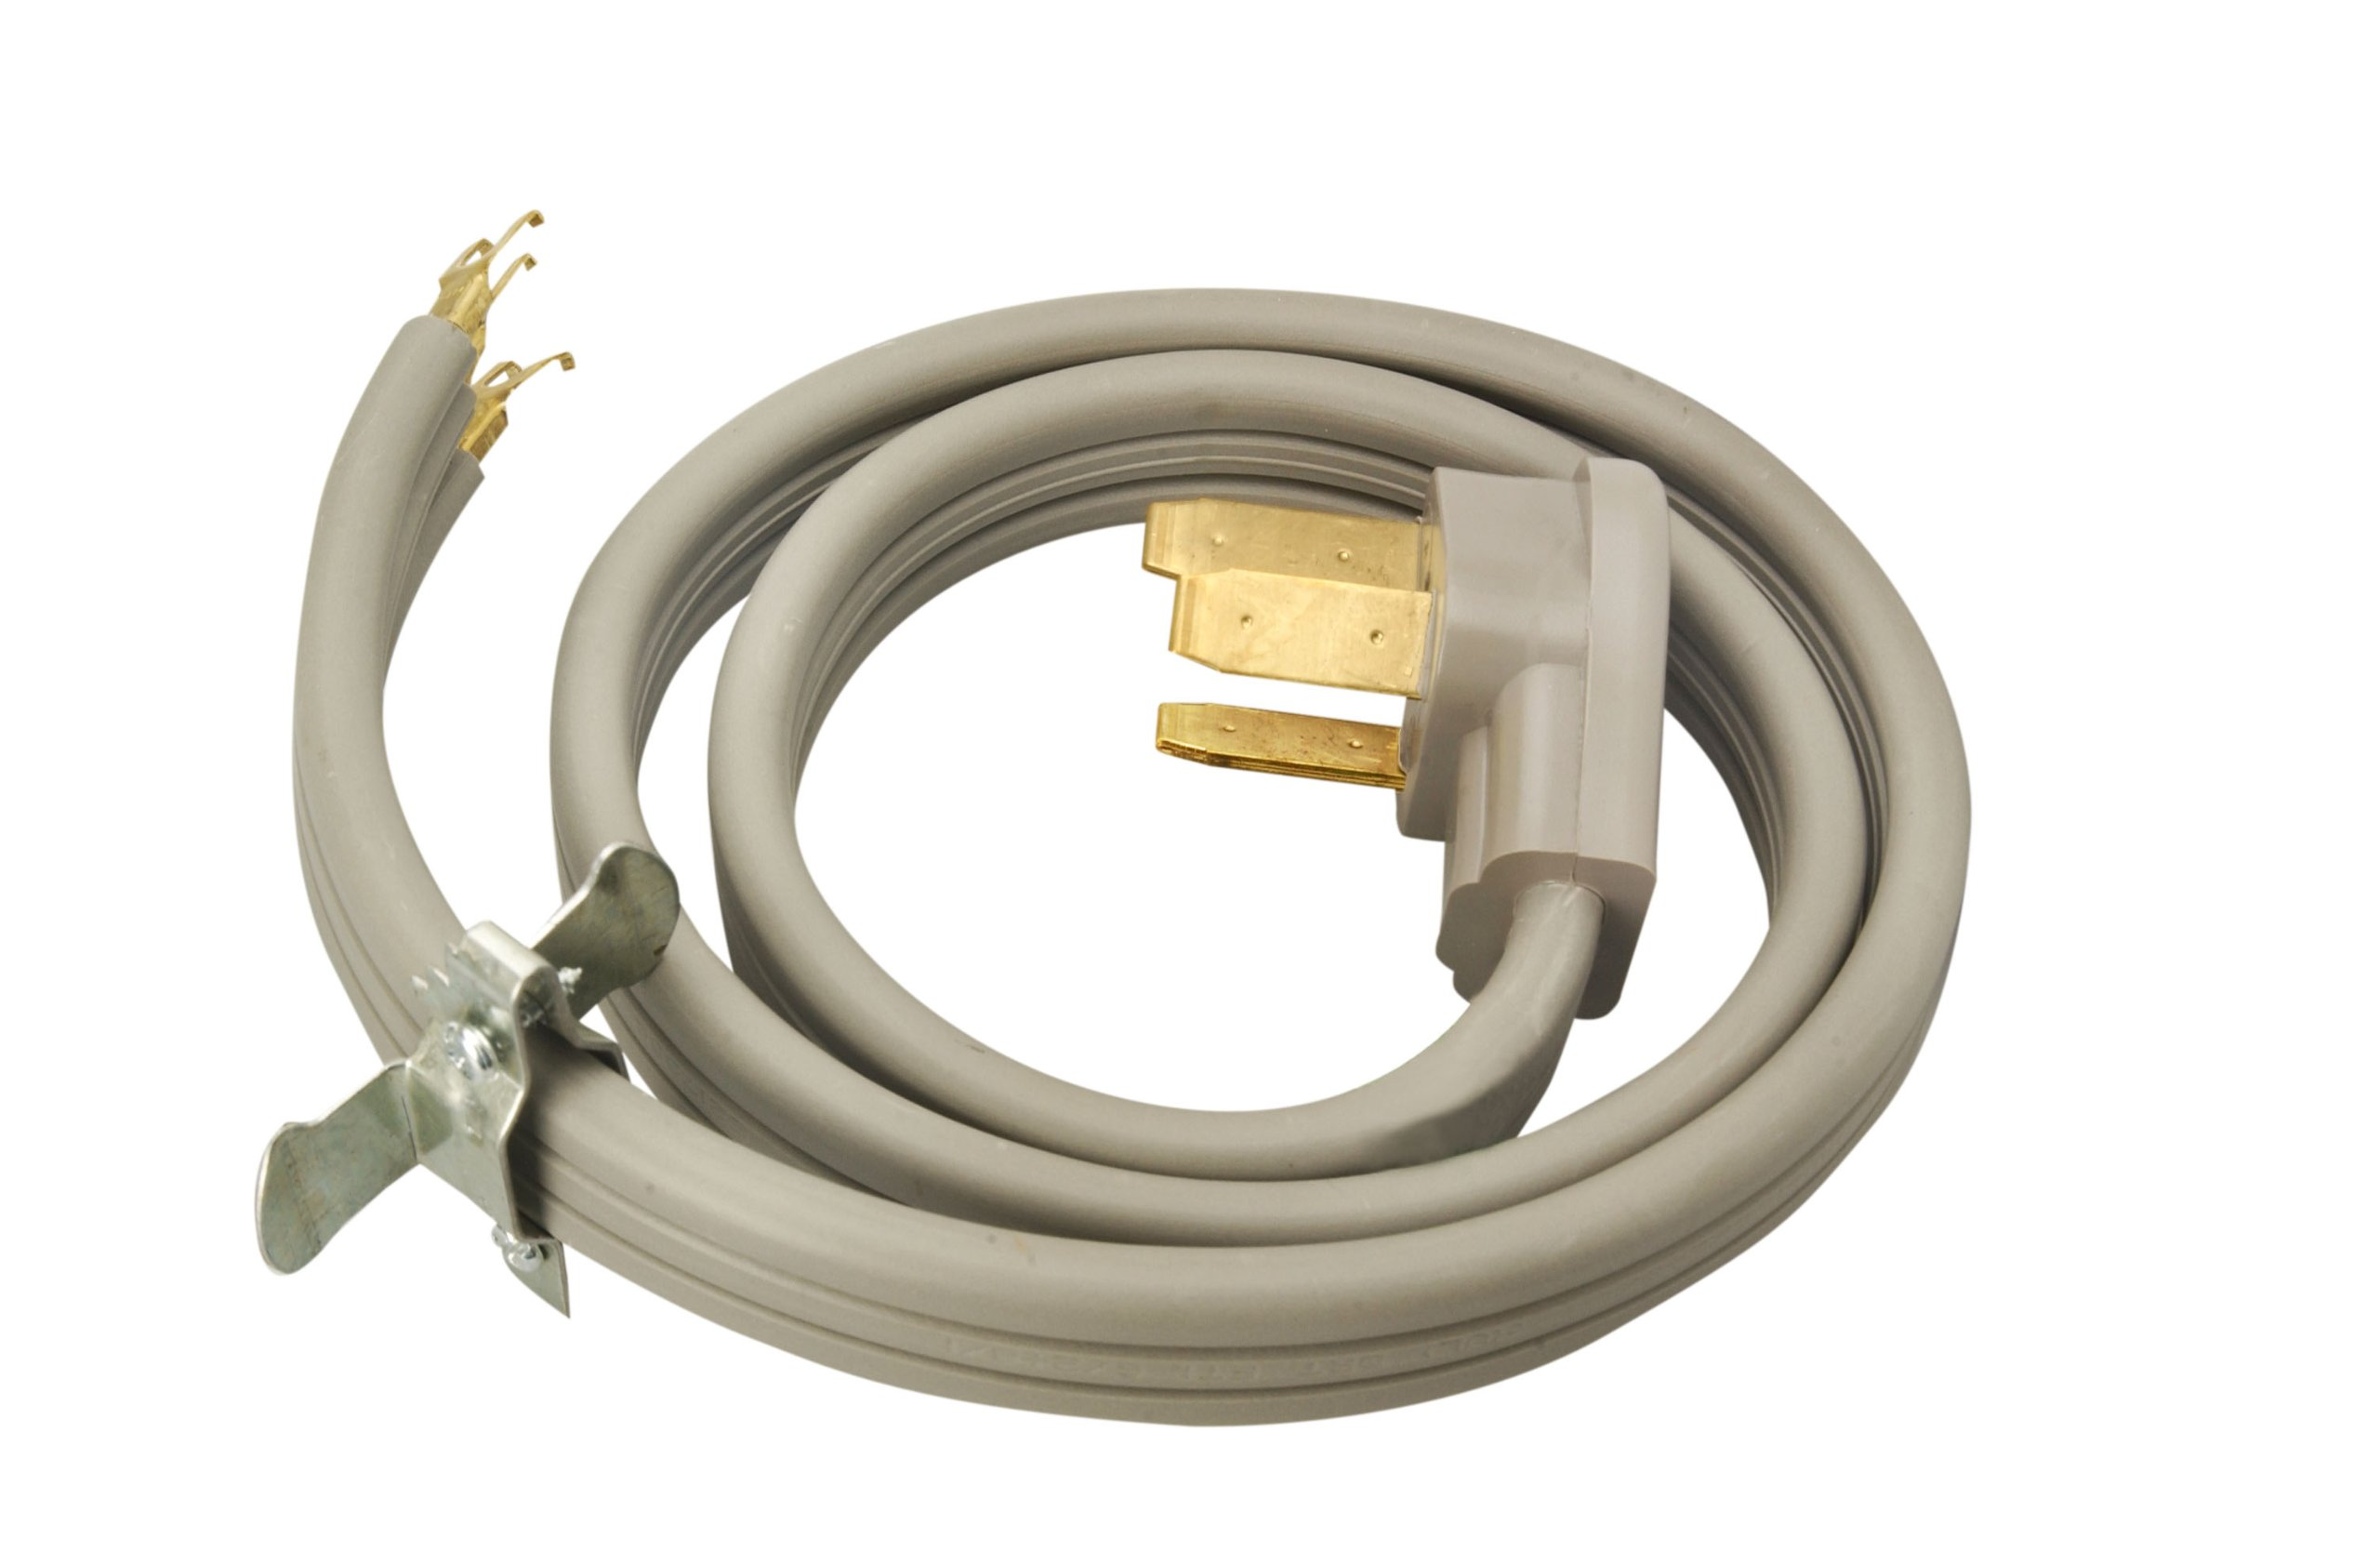 Coleman Cable 09014 50-Amp 3-Wire Range Power Cord, 4-Foot